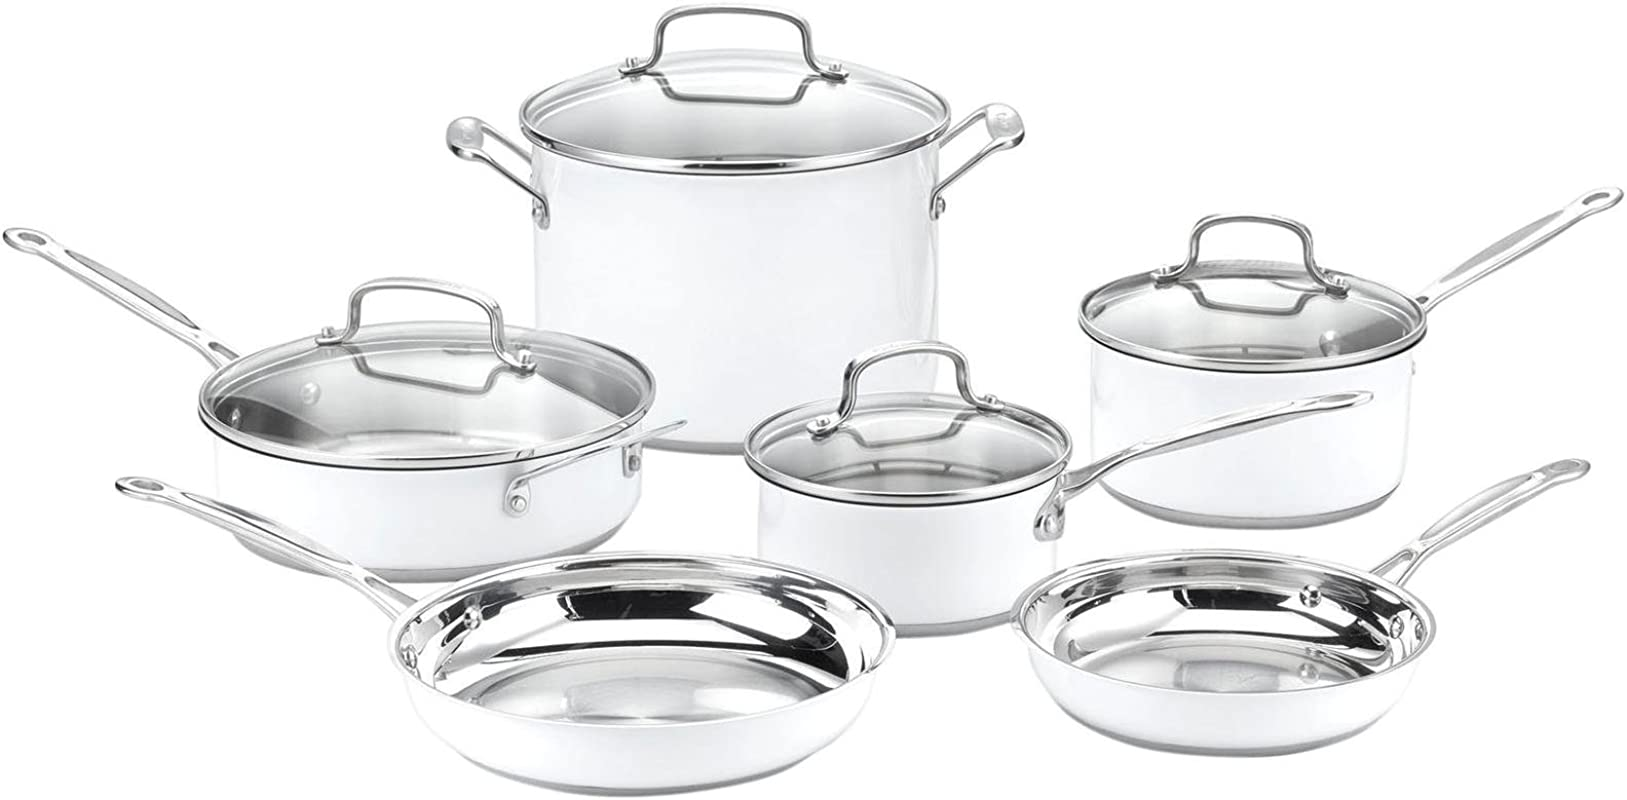 Cuisinart CSMW 10 Chef S Classic Stainless Steel 10 Piece Cookware Set White